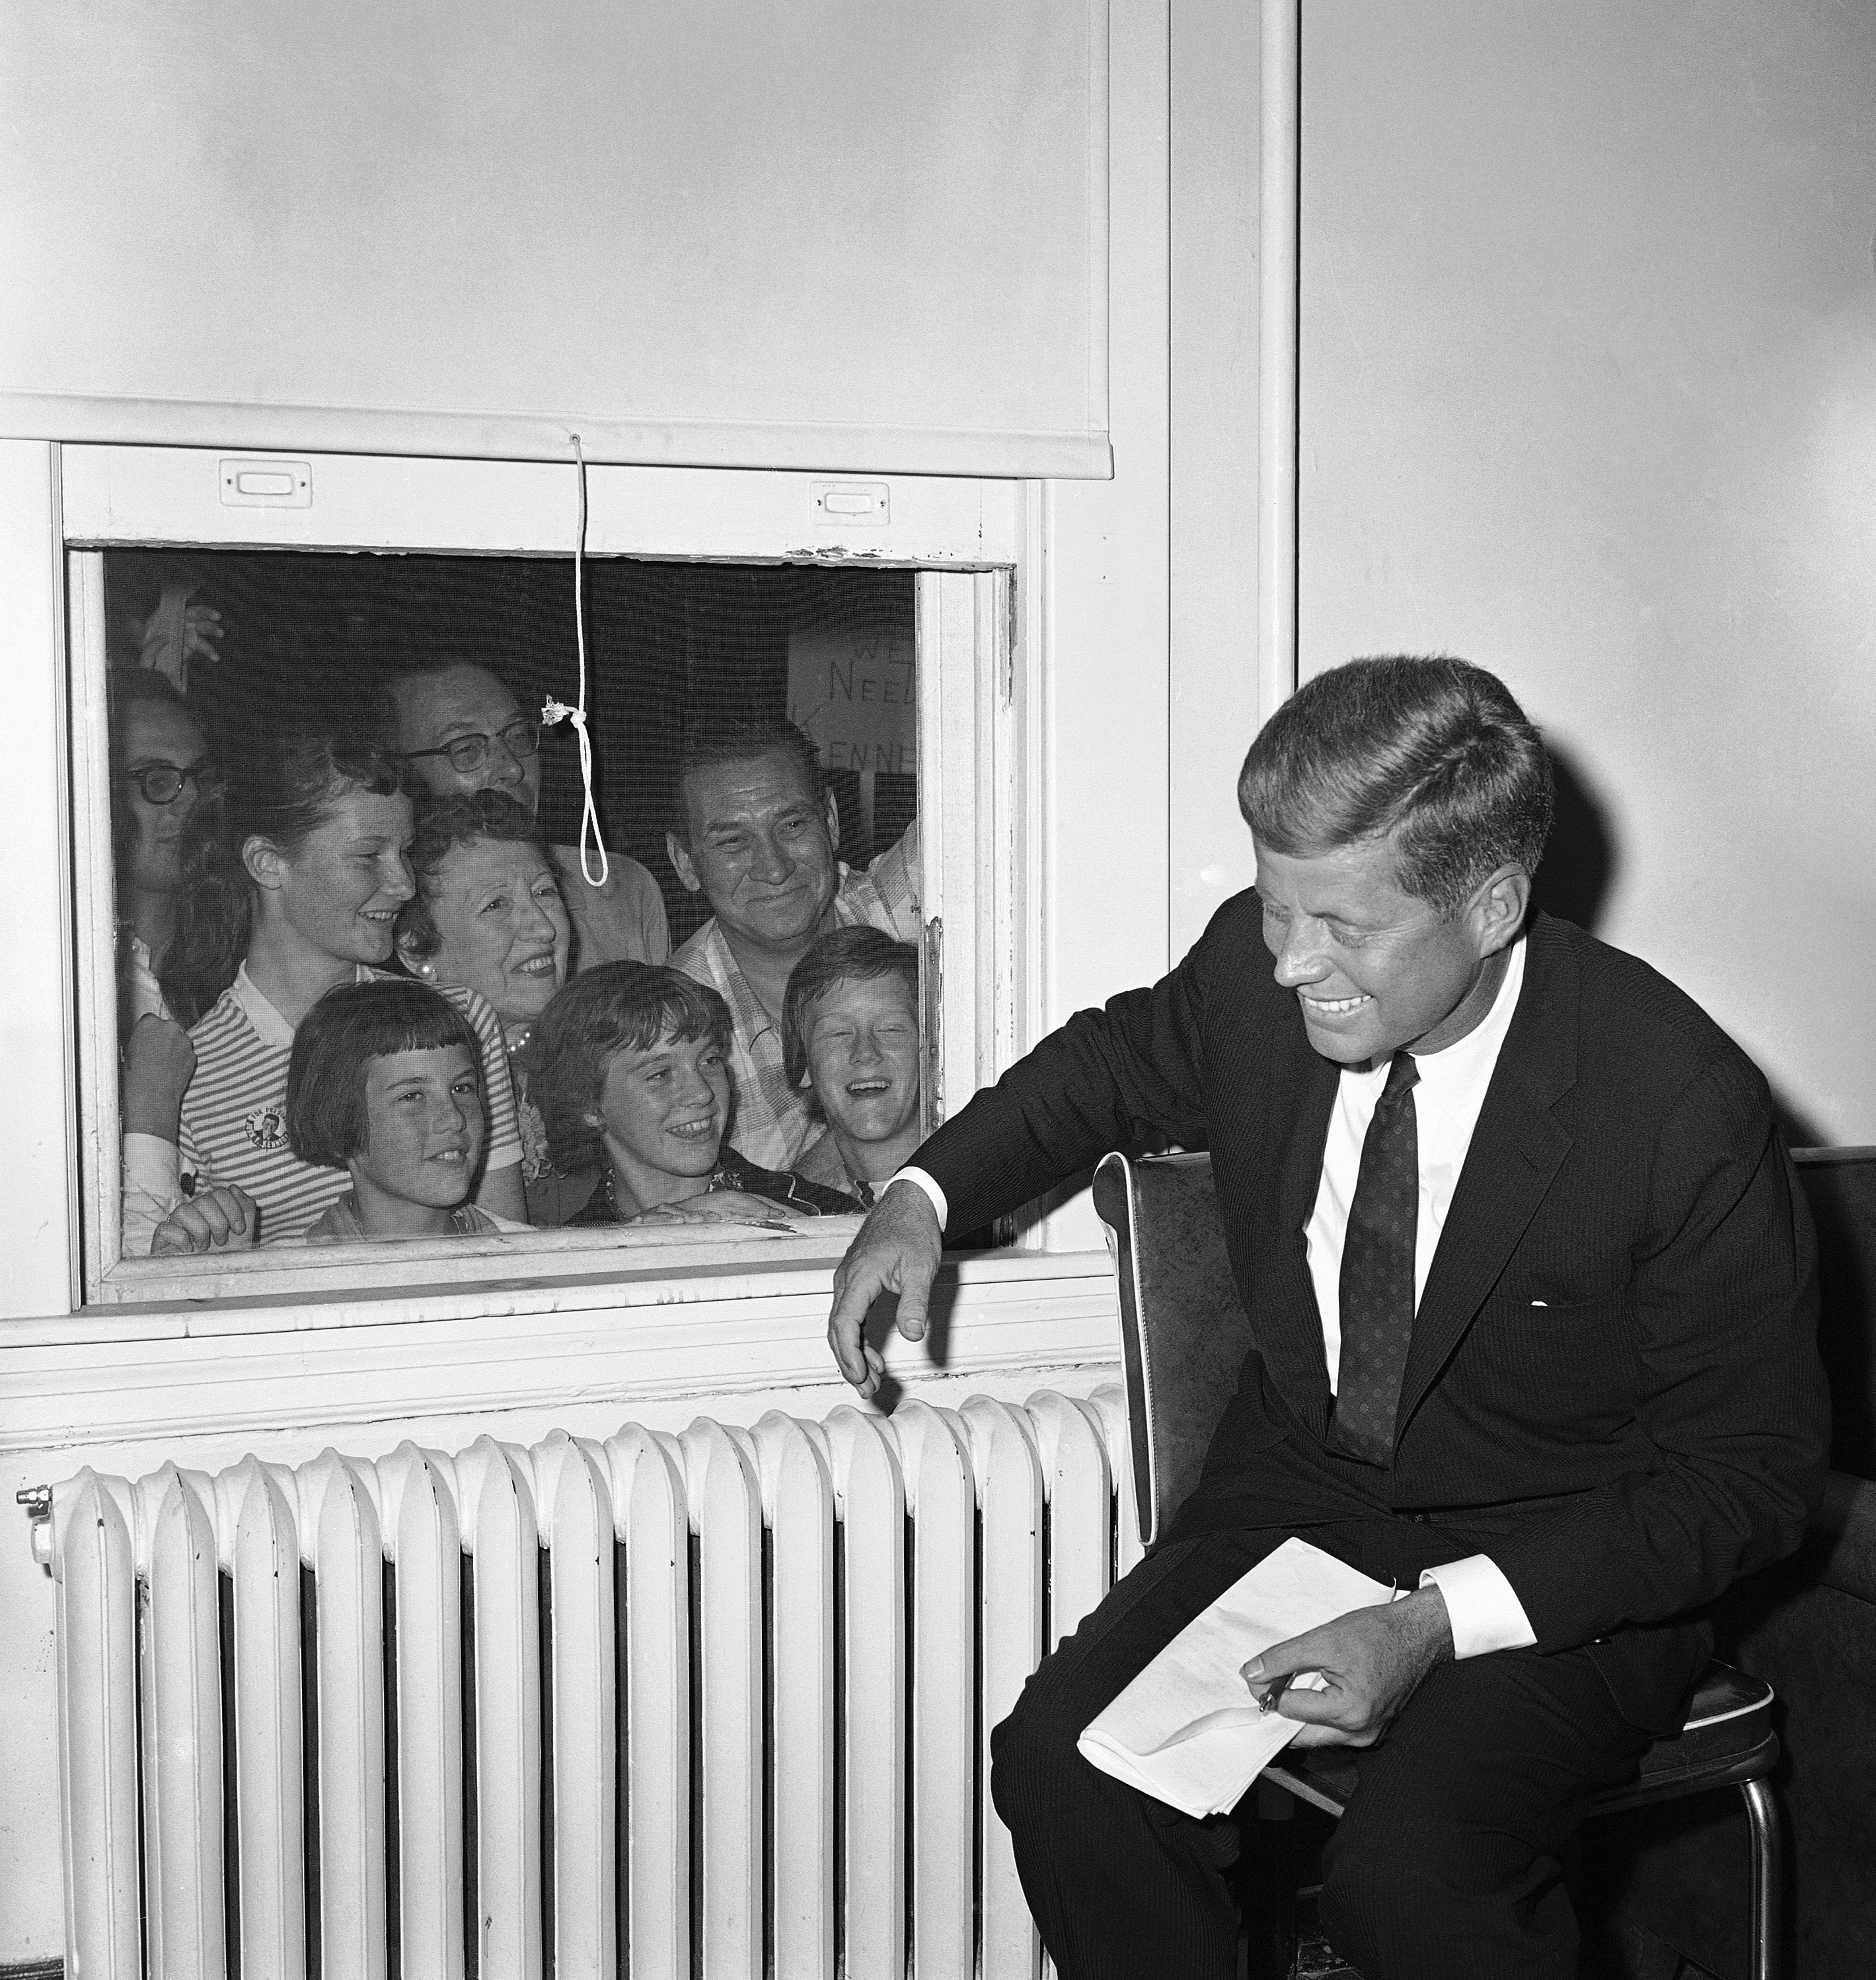 <div class='meta'><div class='origin-logo' data-origin='none'></div><span class='caption-text' data-credit='ASSOCIATED PRESS'>Seeking a look at a presidential possibility, people jam the window behind Sen. Jack F. Kennedy, the Democratic nominee in Baltimore, Maryland, Sept. 16, 1960.</span></div>